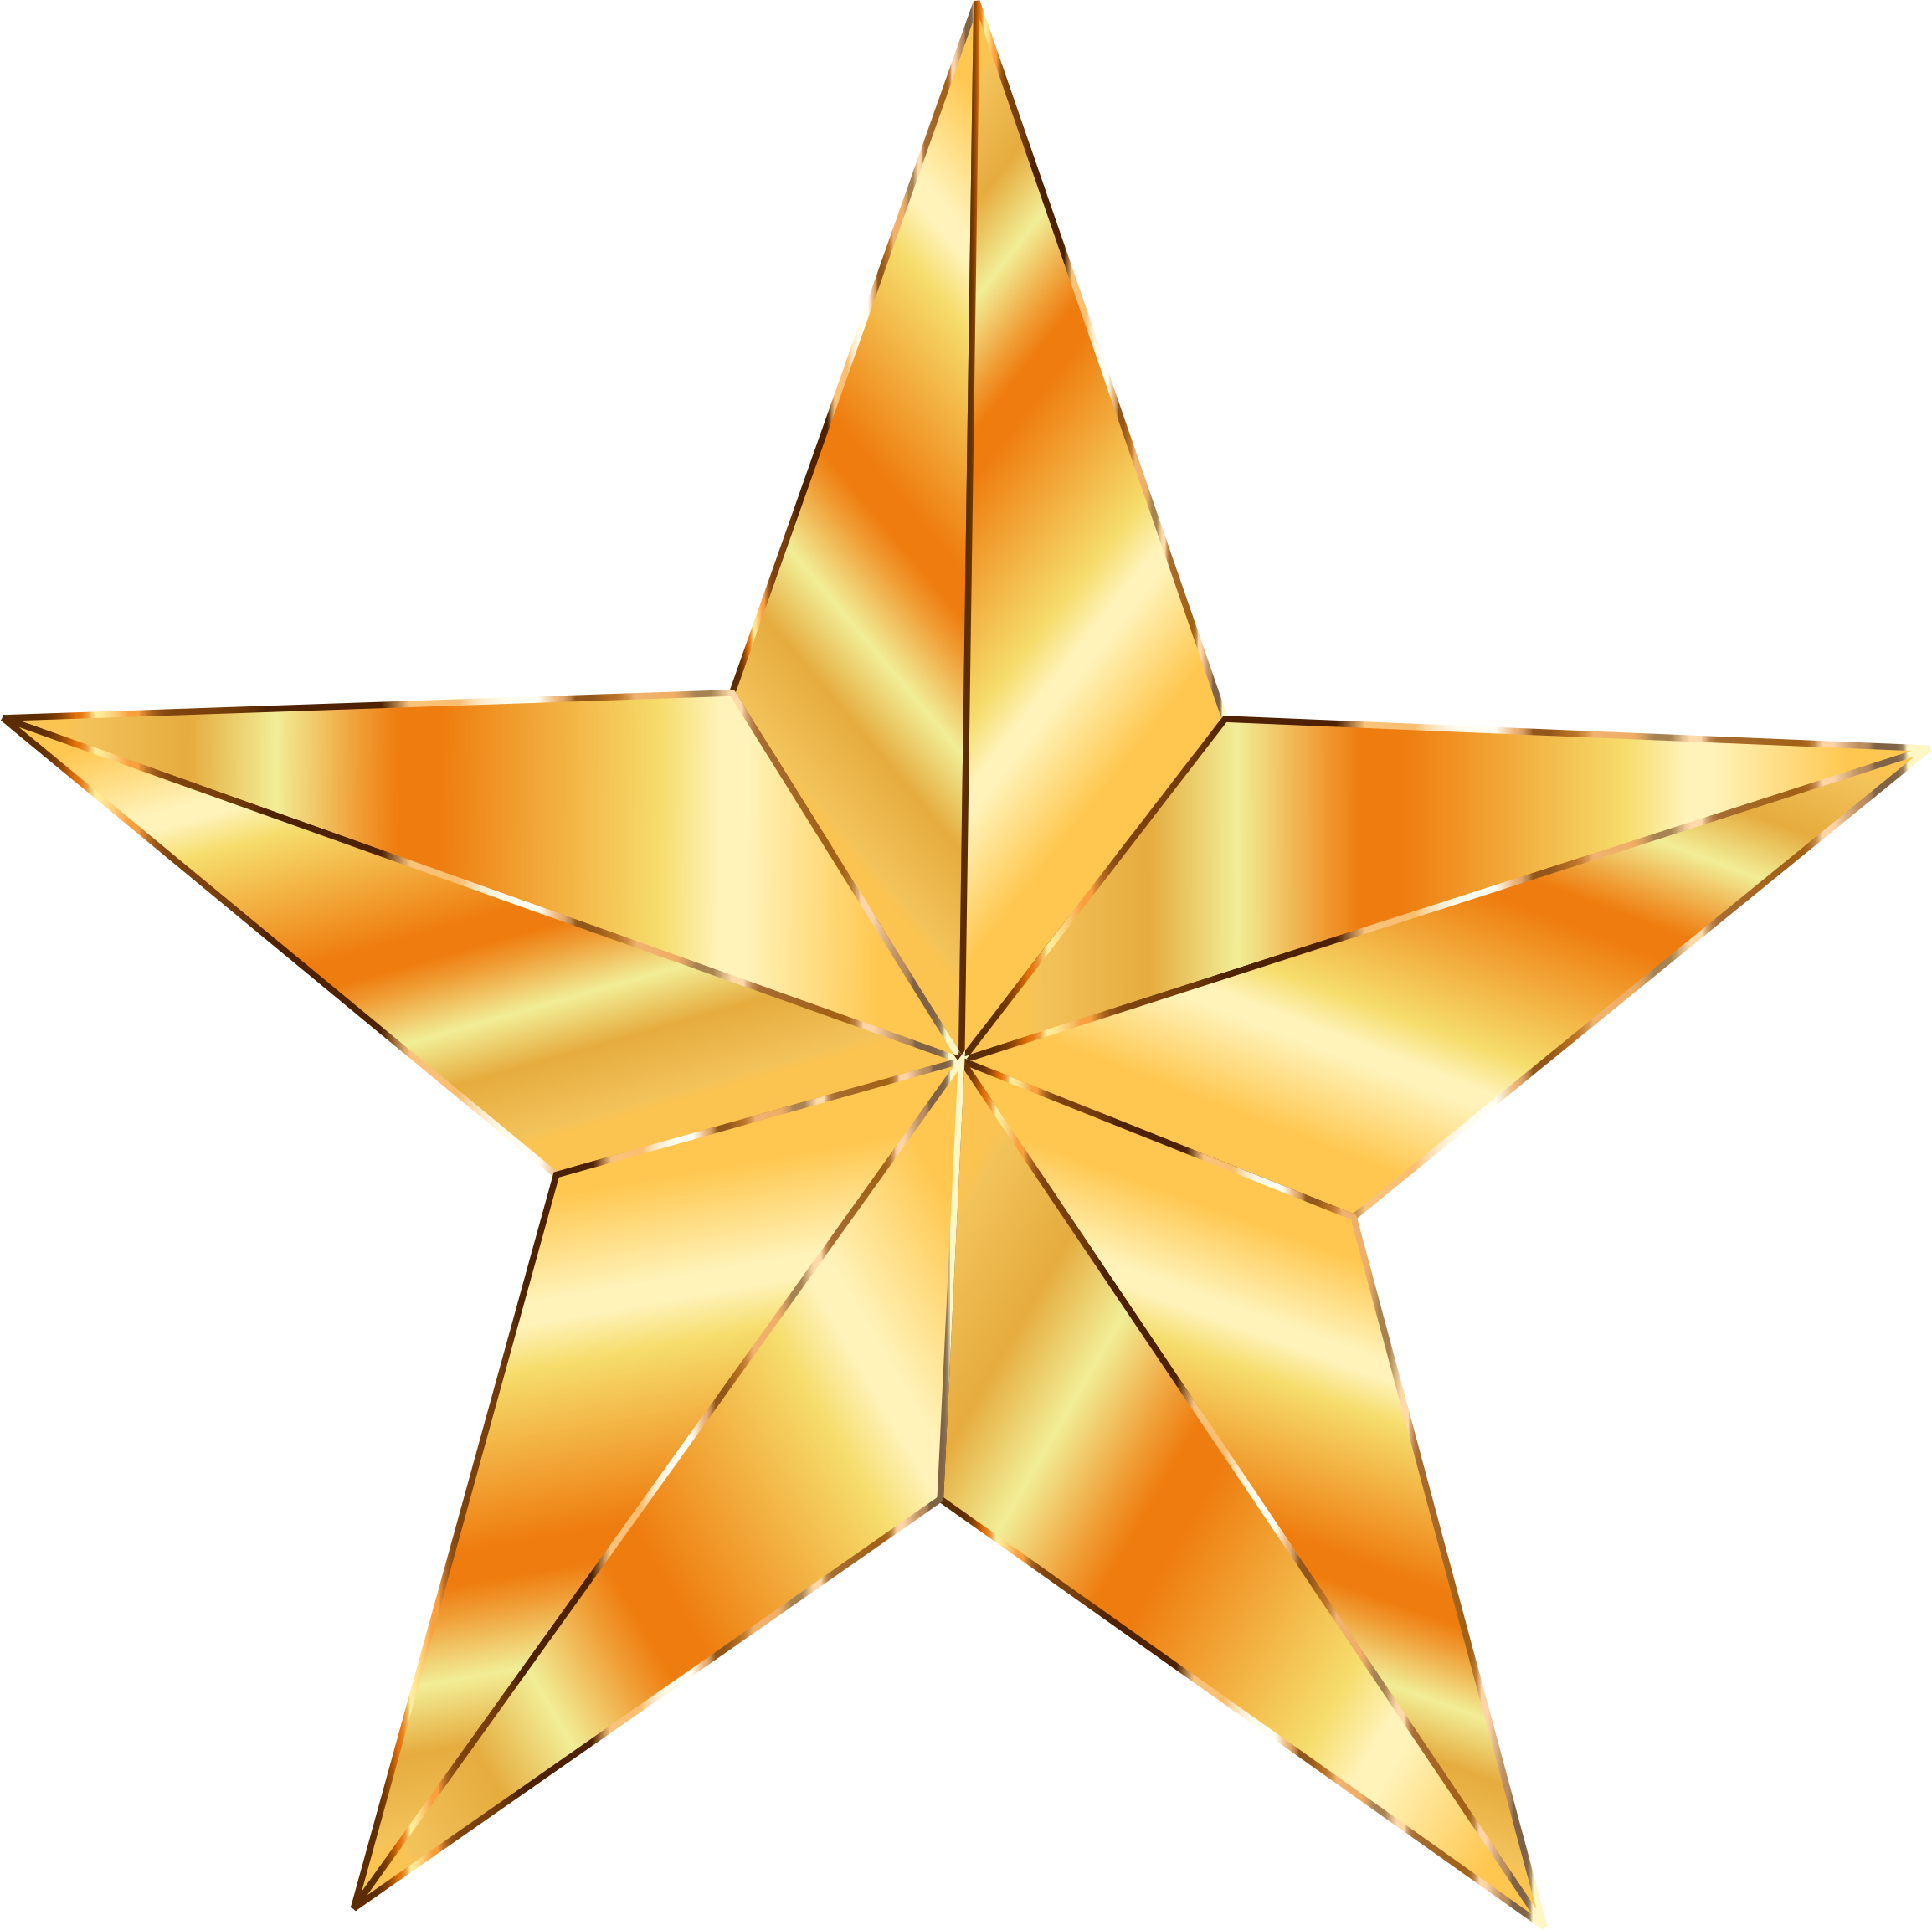 Clipart gold star graphic black and white download Clipart - Golden Star graphic black and white download